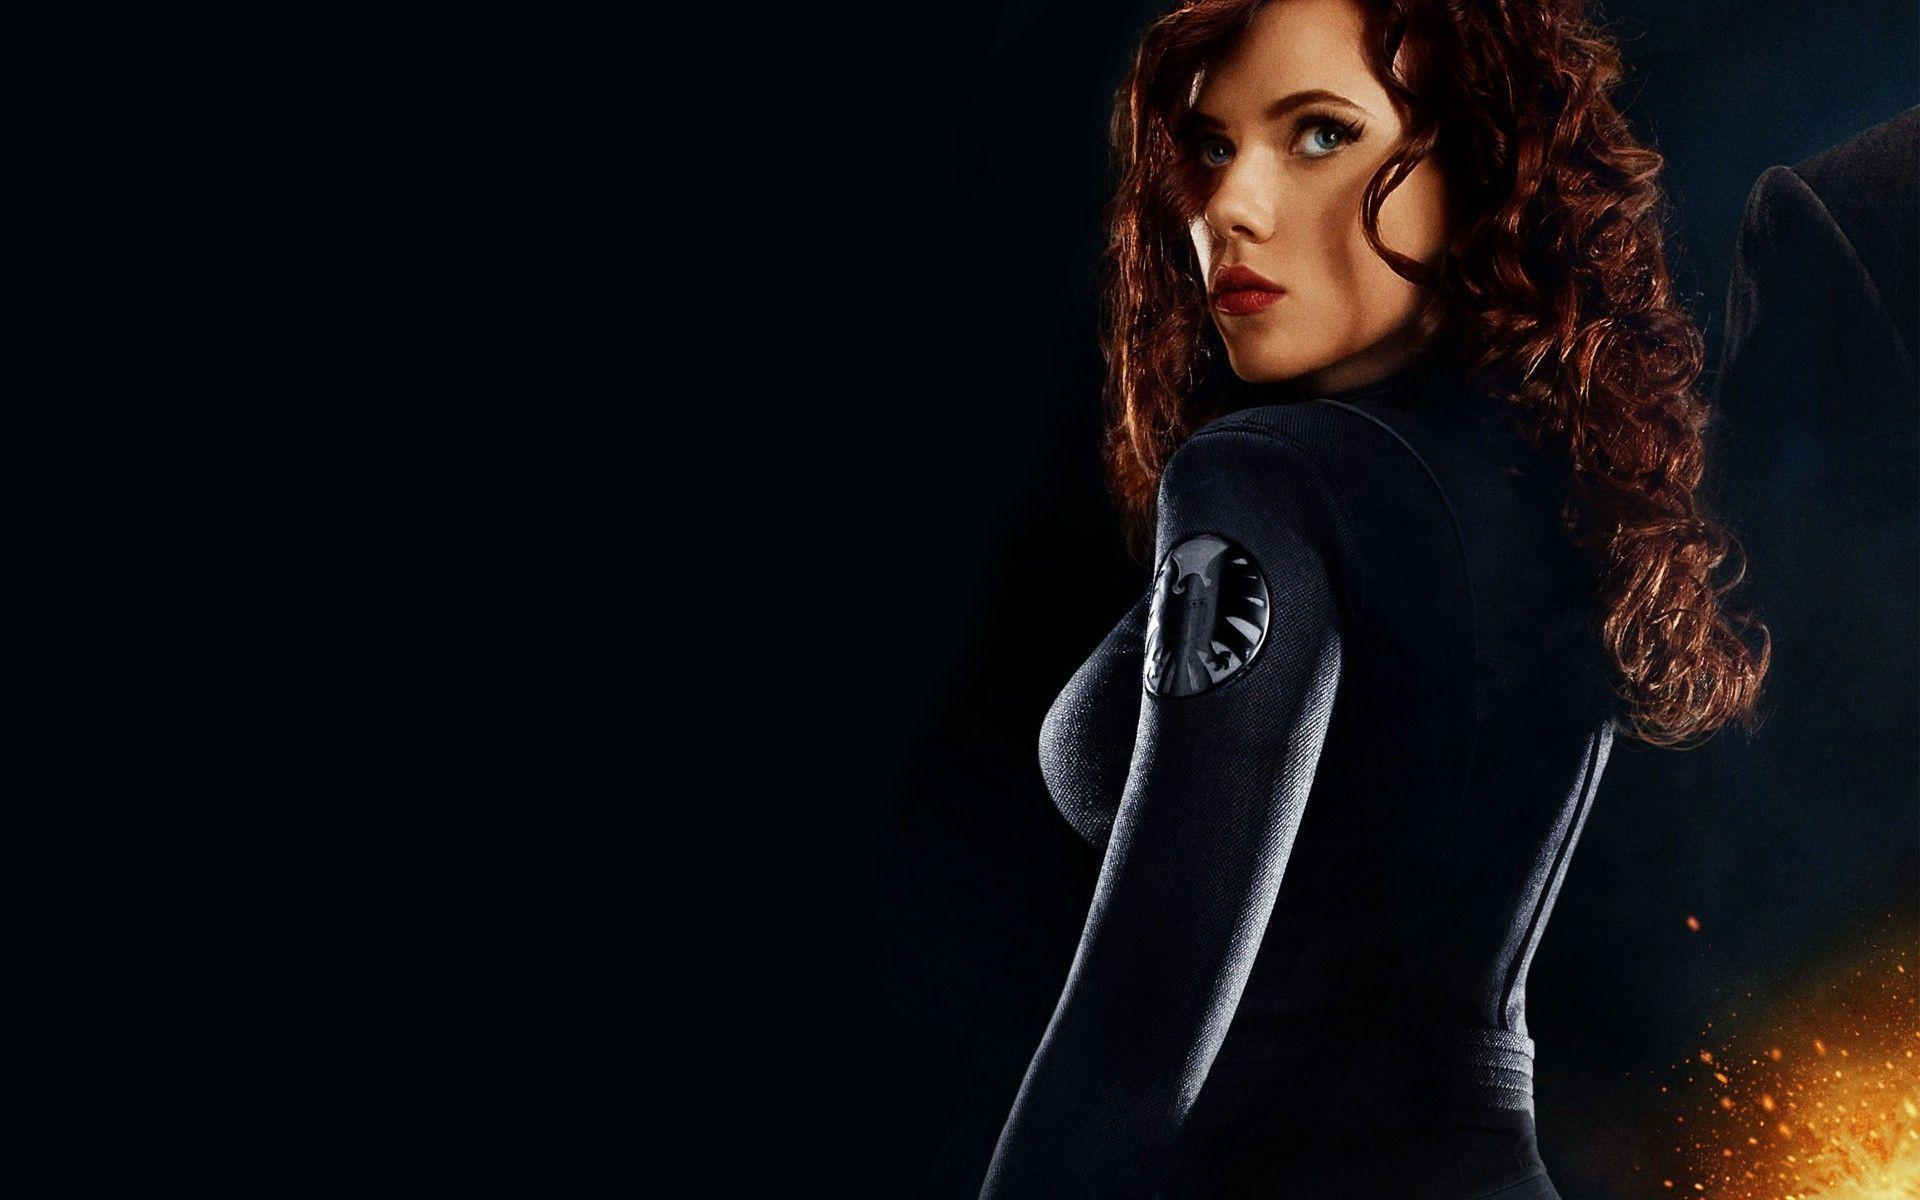 Scarlett Johansson HD 33 HD Images Wallpapers | HD Image Wallpaper